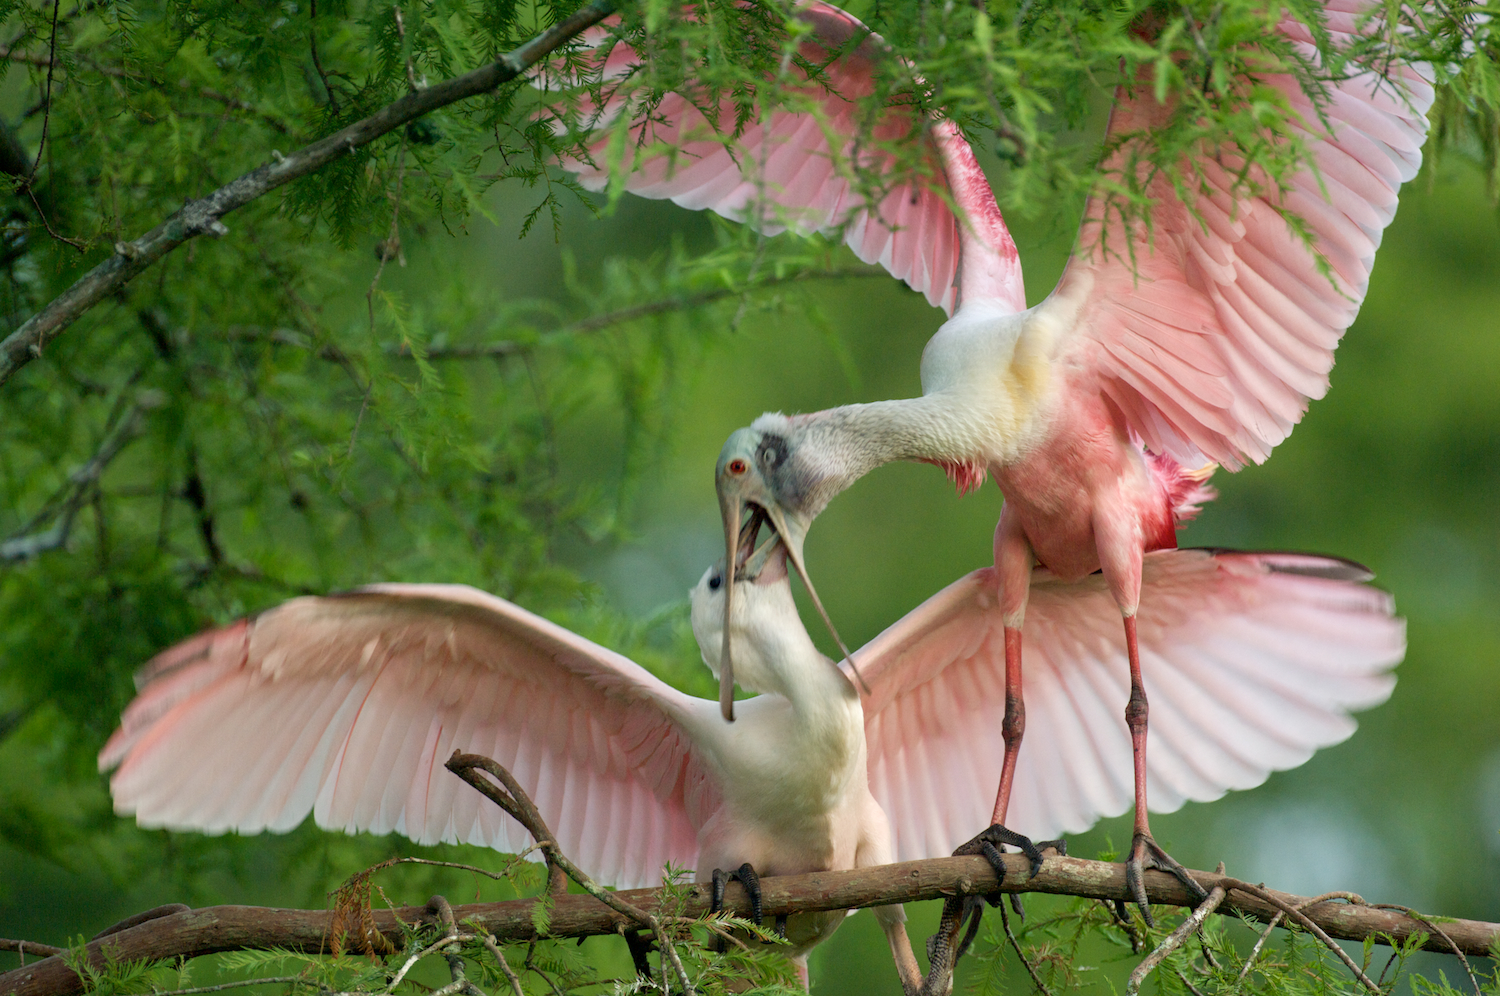 Roseate Spoonbill Feeding Chick